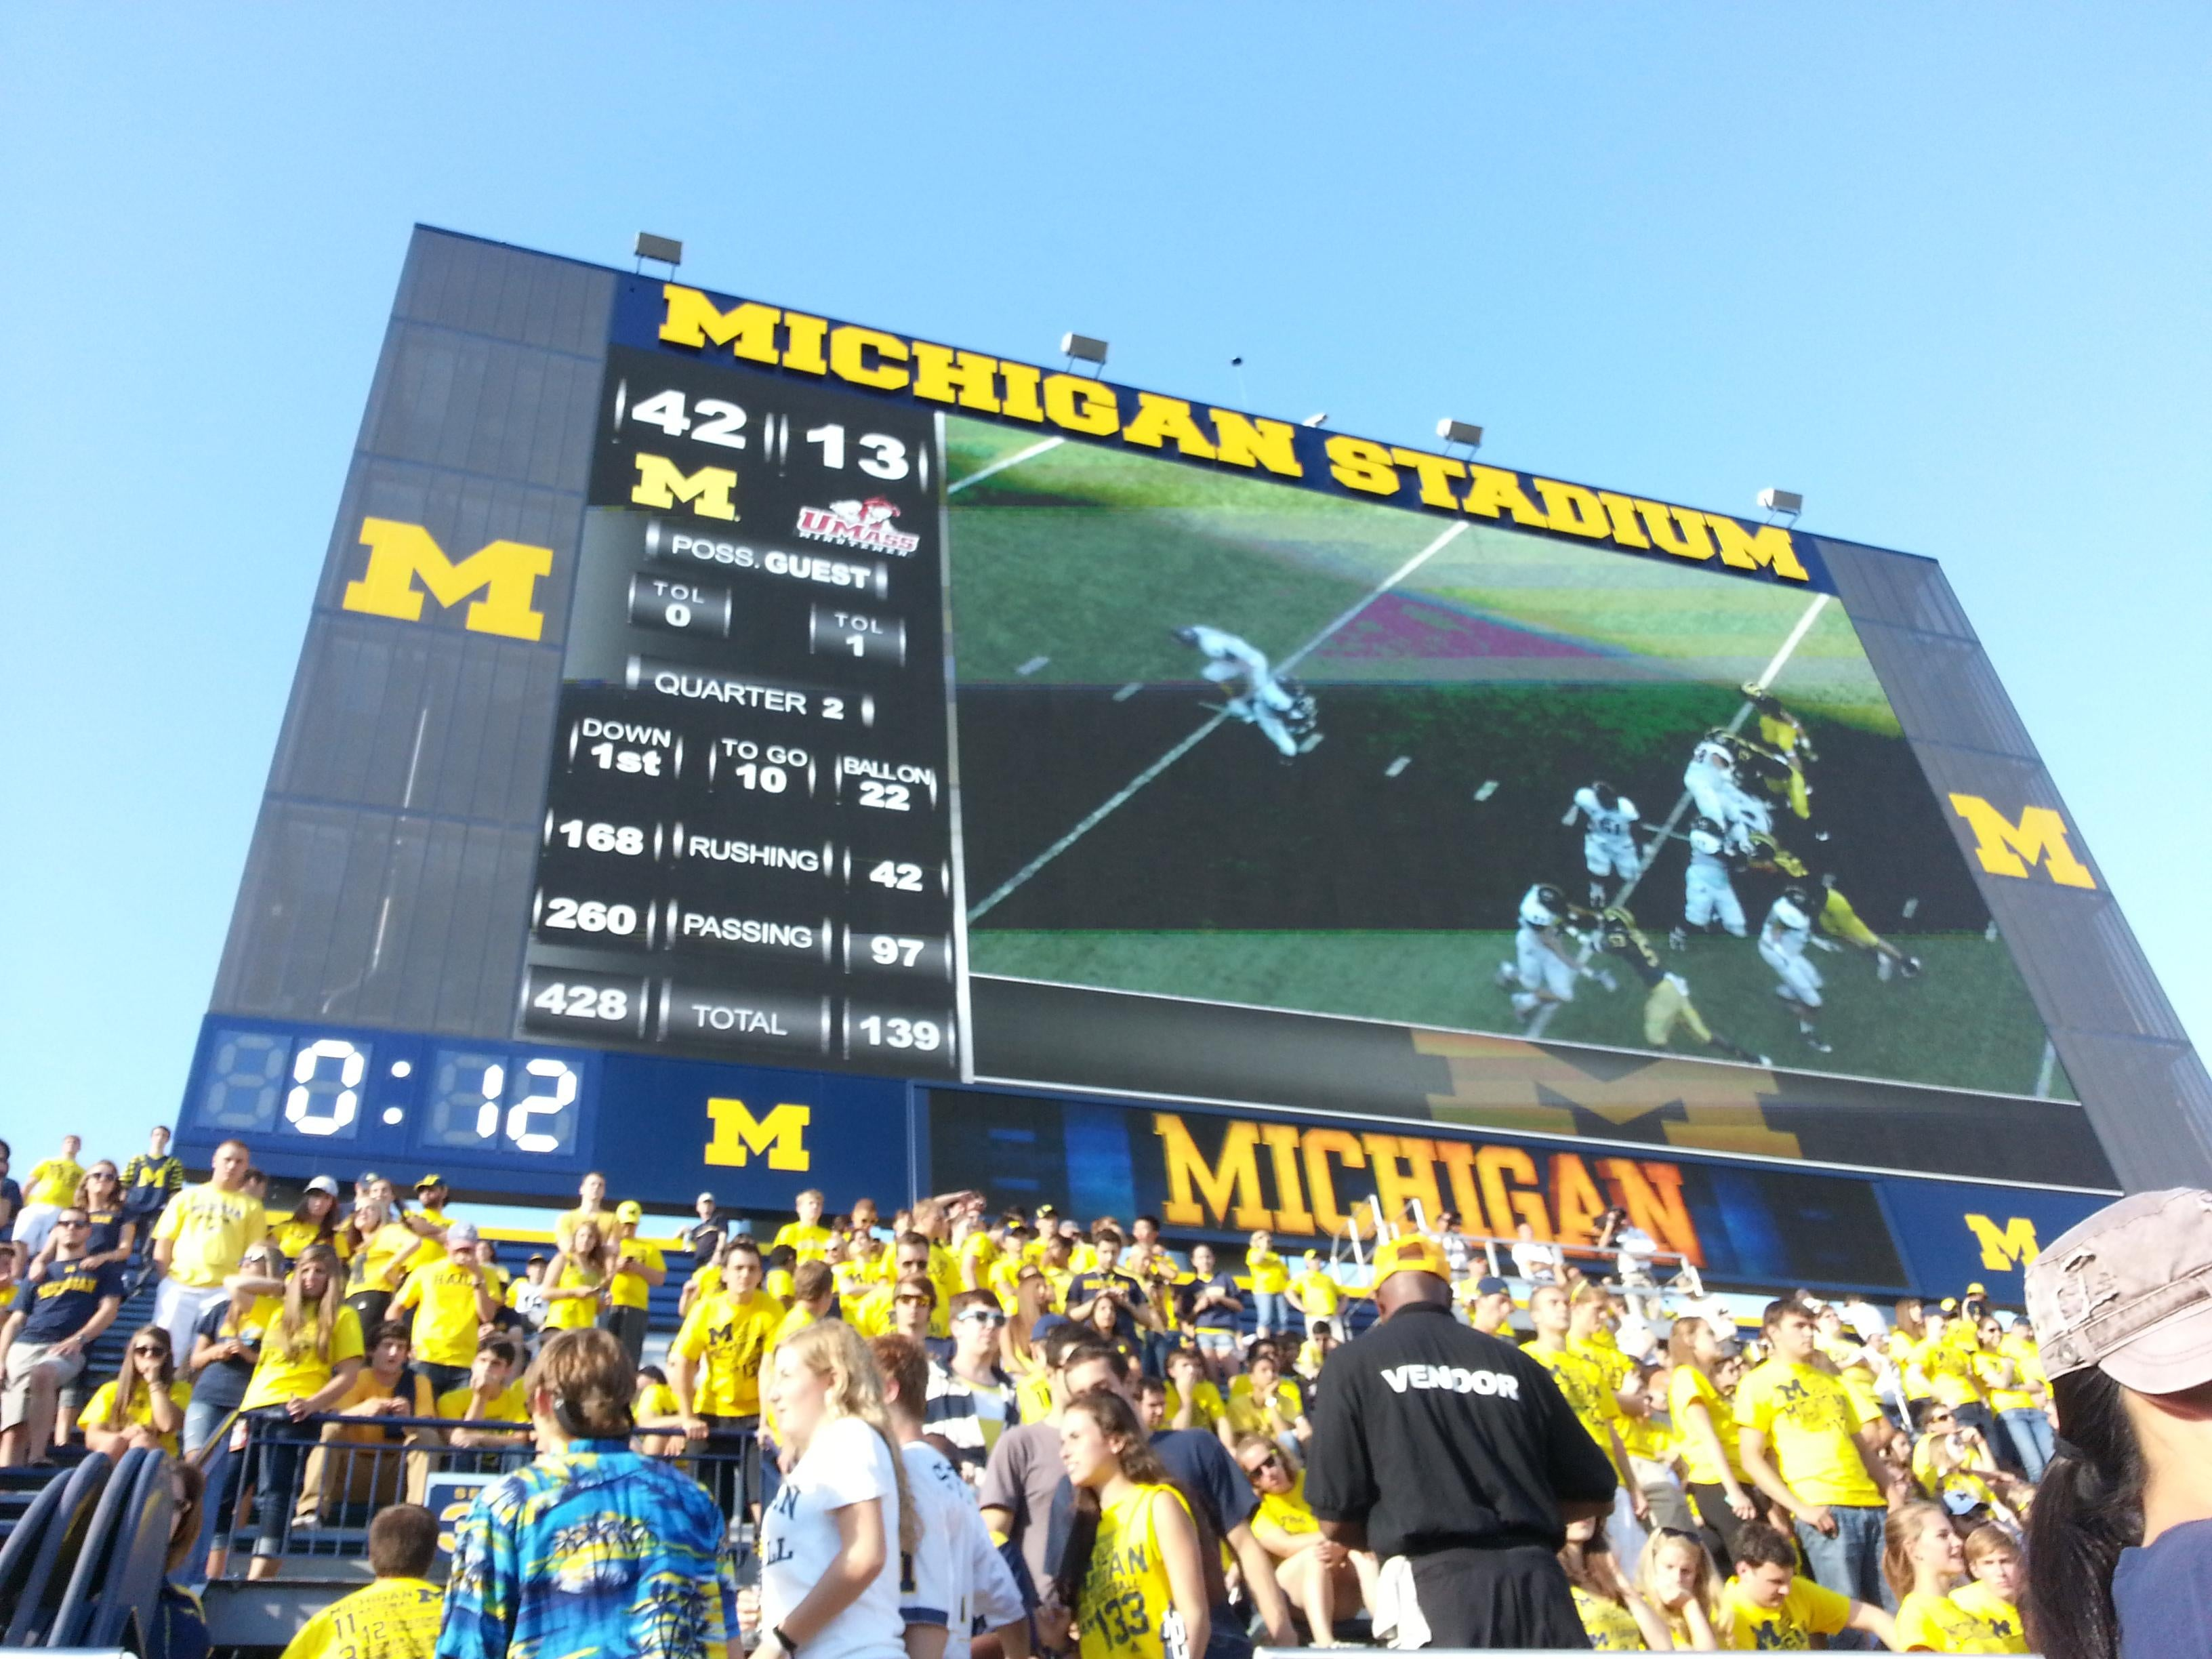 Billboard in Ann Arbor